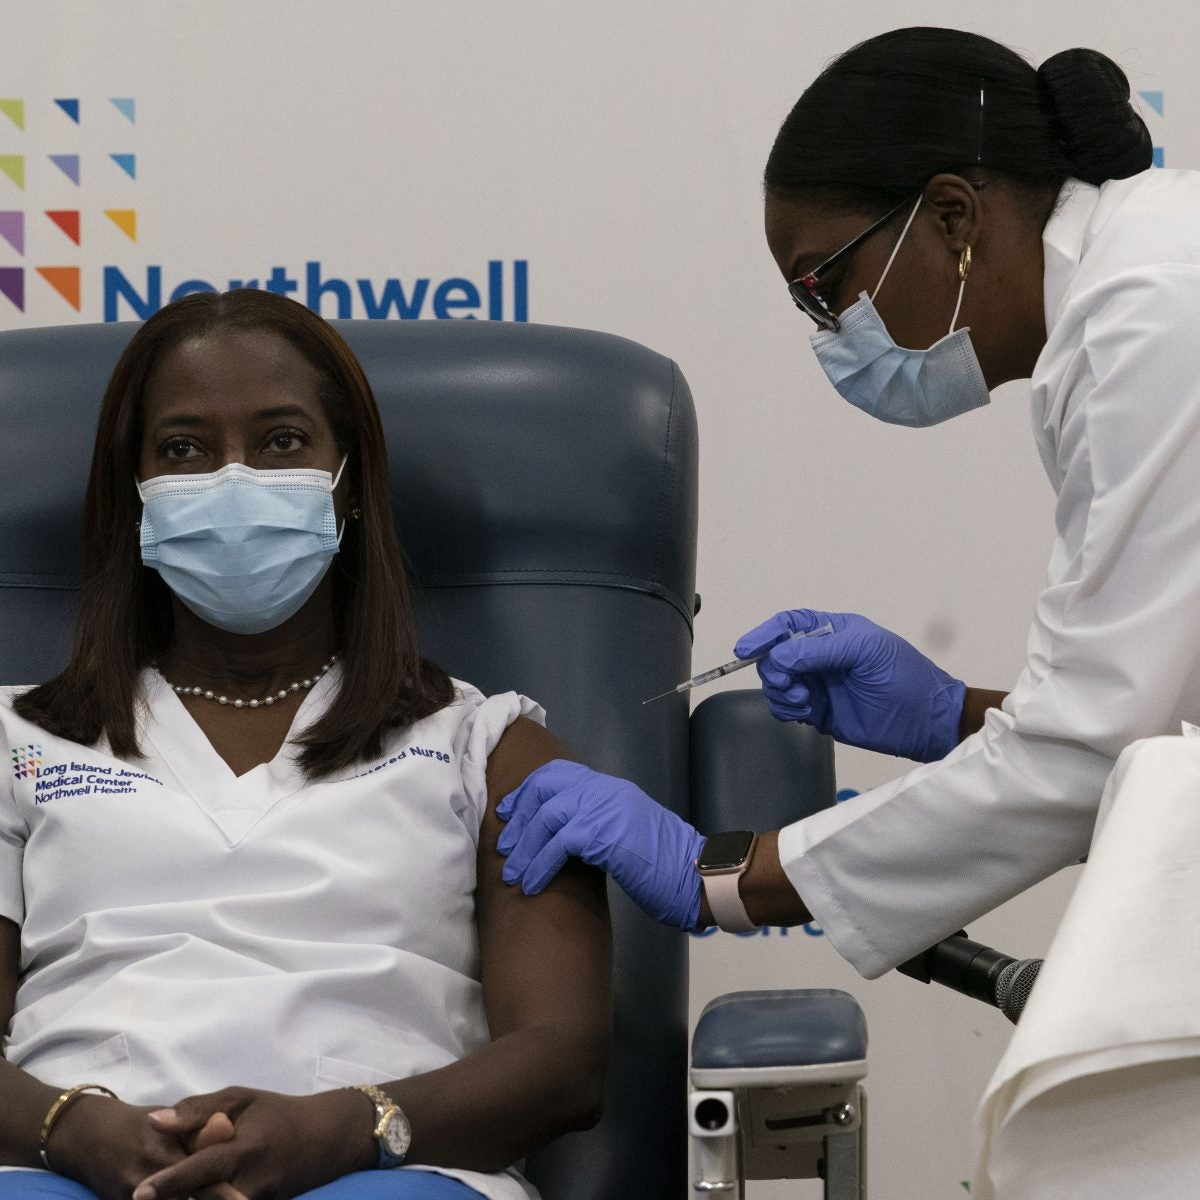 This Georgia County is Offering $100 if You Get a COVID-19 Vaccine